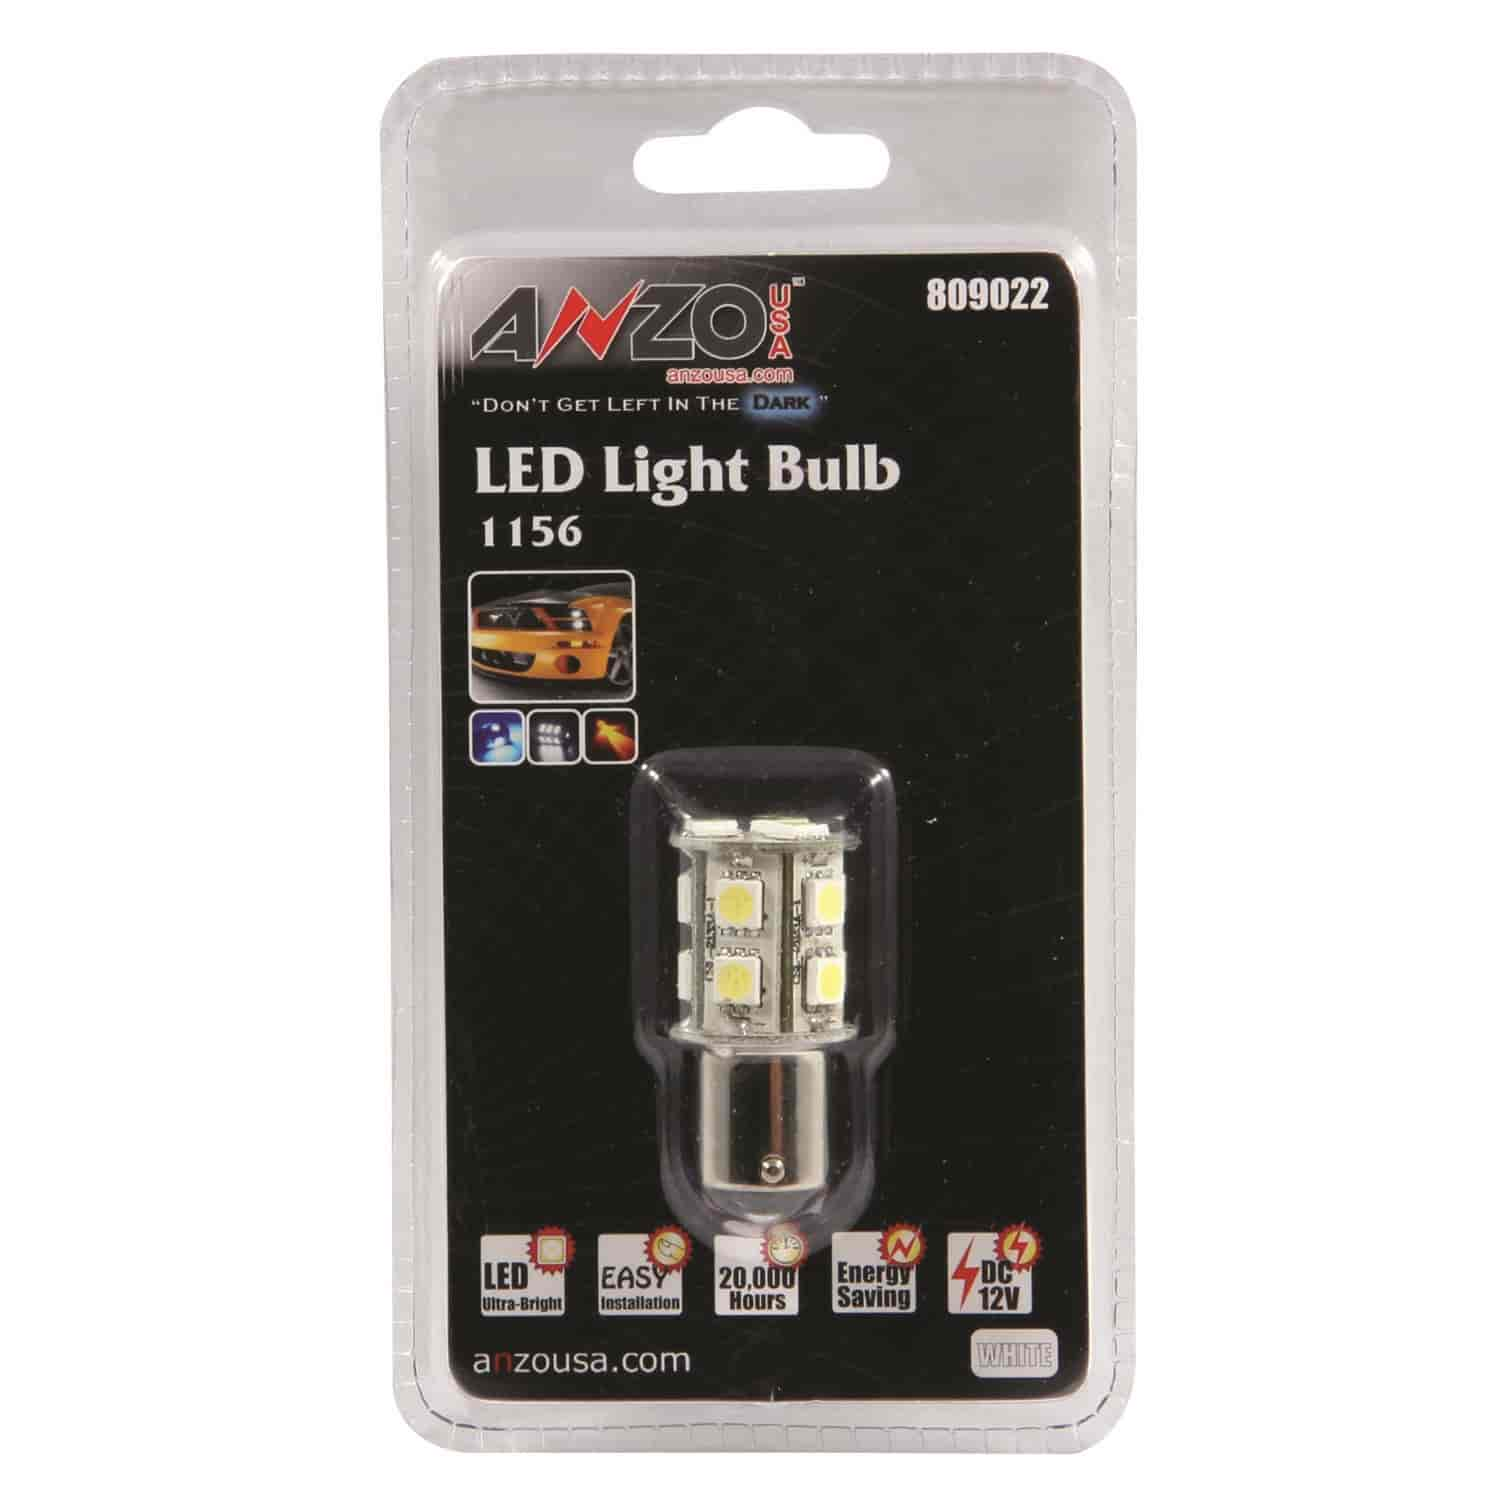 Anzo 809022 - Anzo LED Universal Light Bulbs